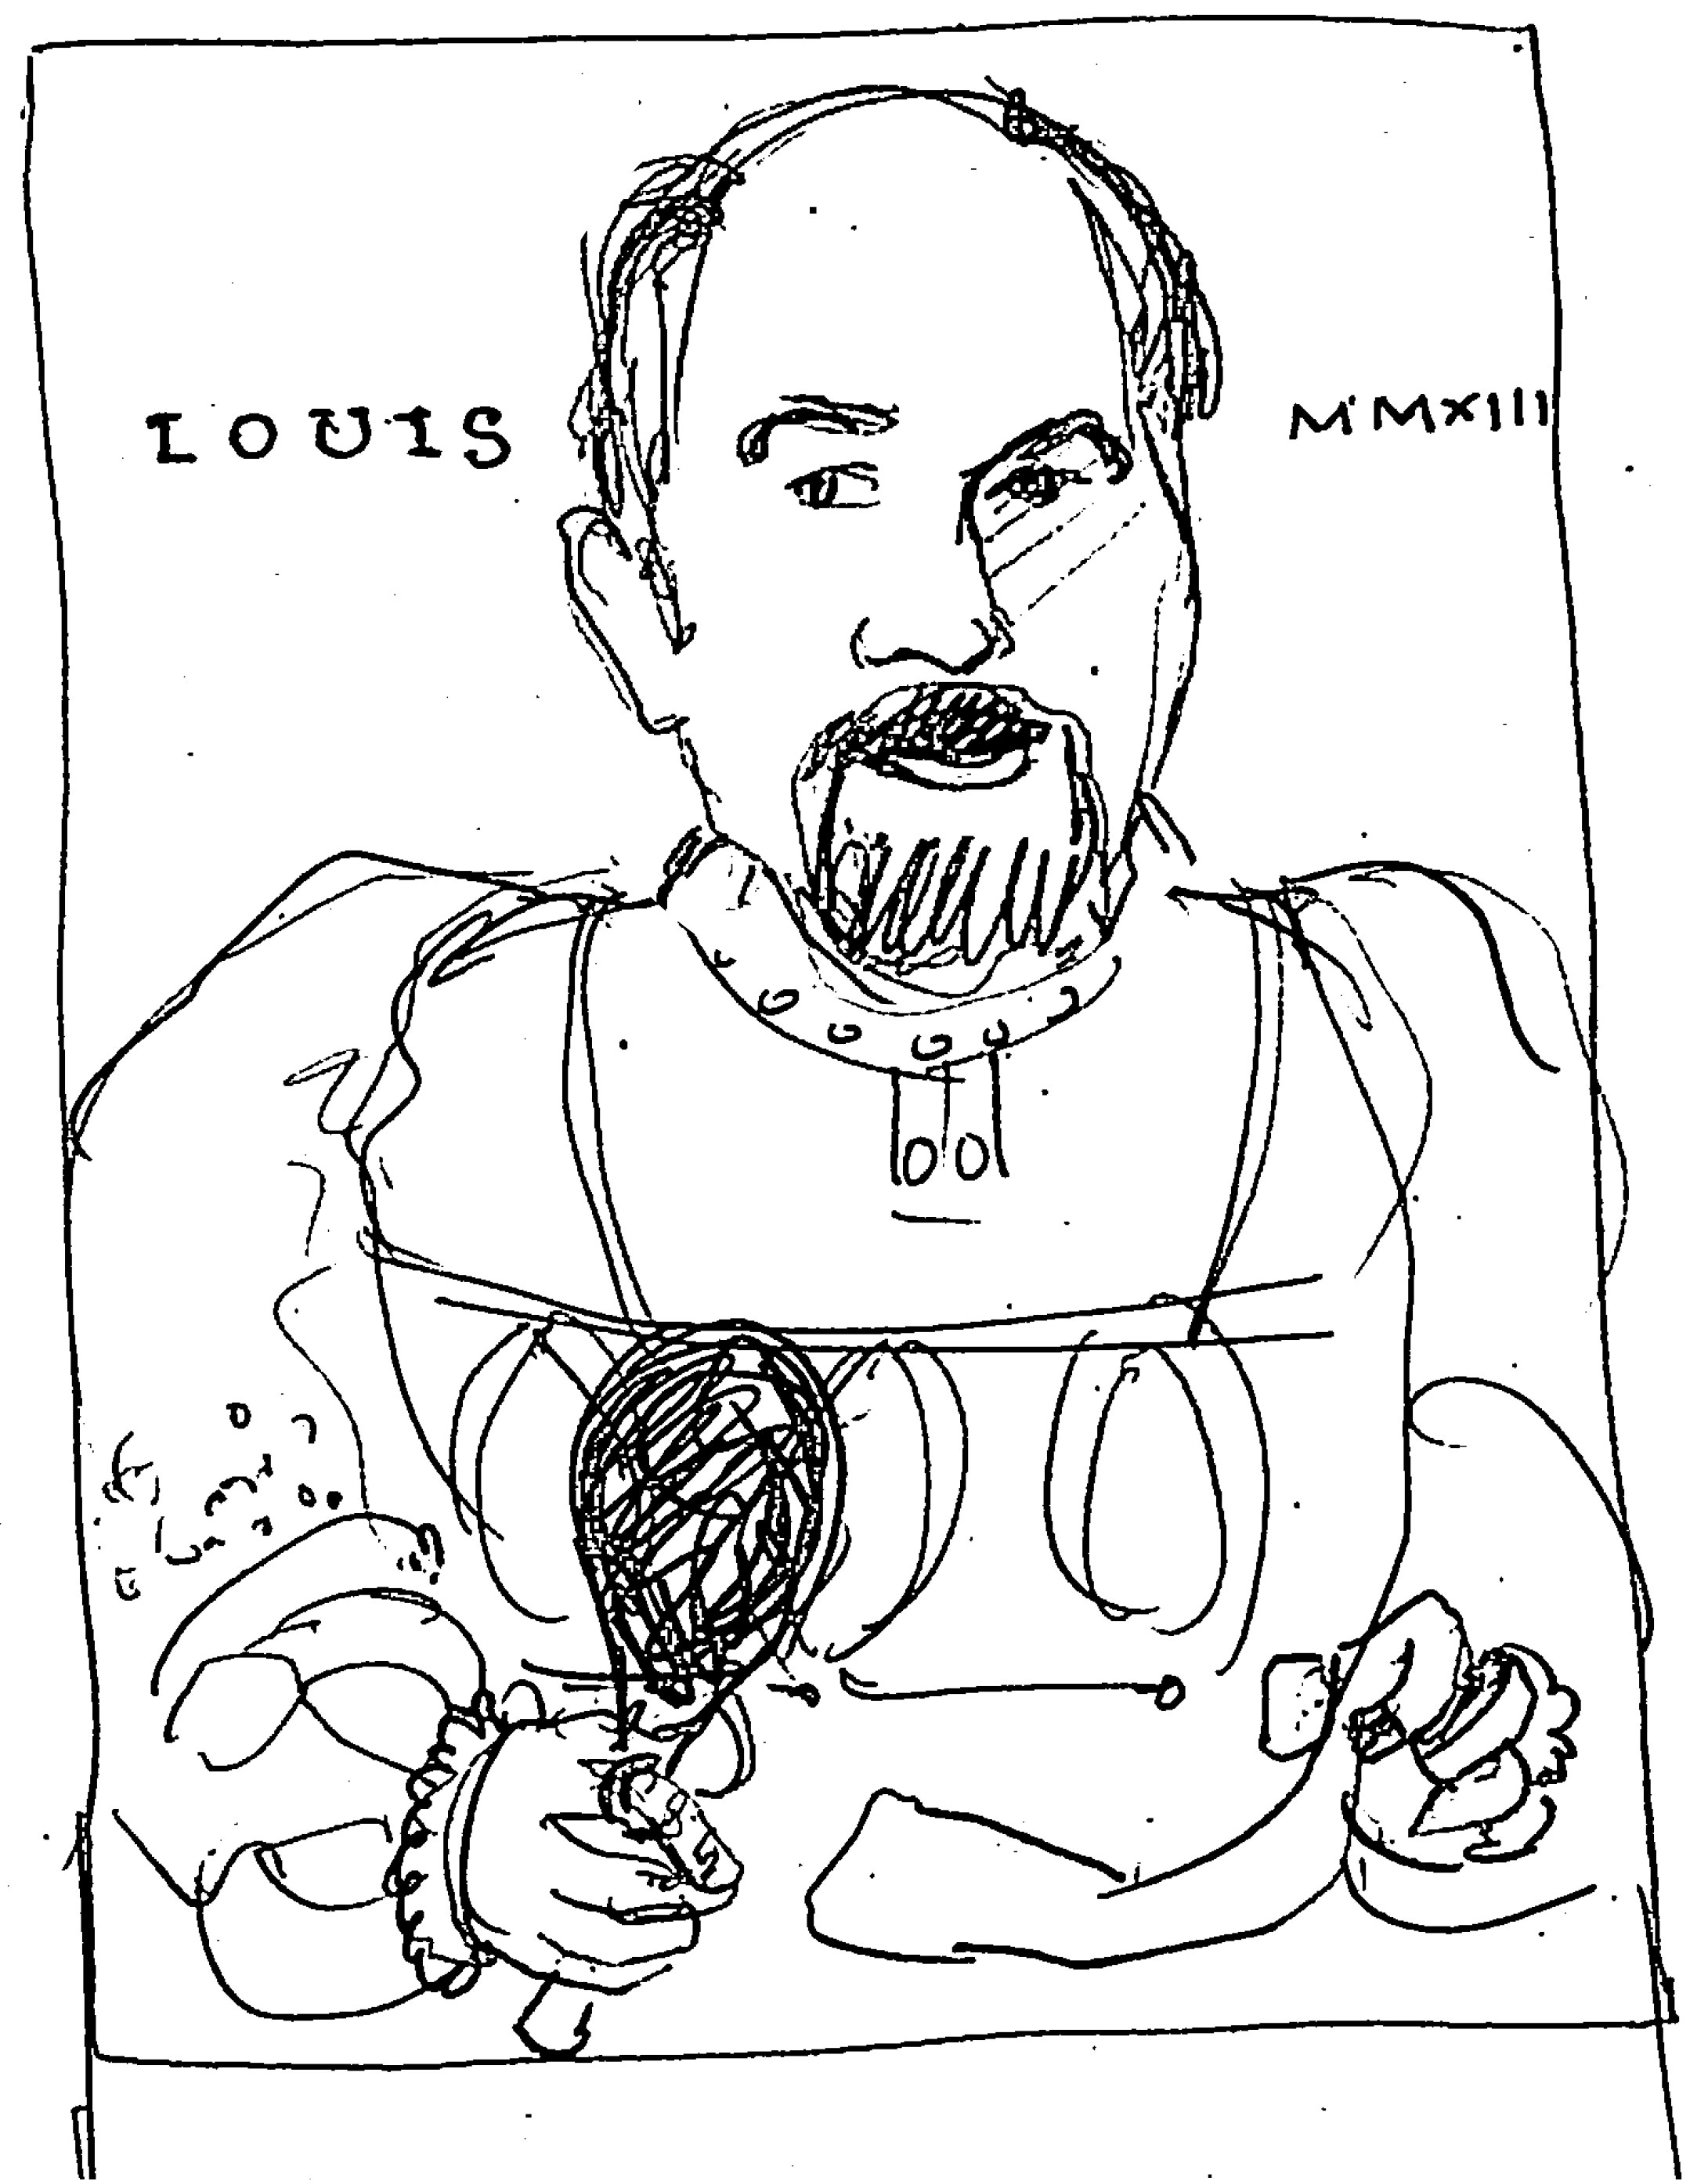 Complete (for now): Louis CK London UK - image 18 - student project